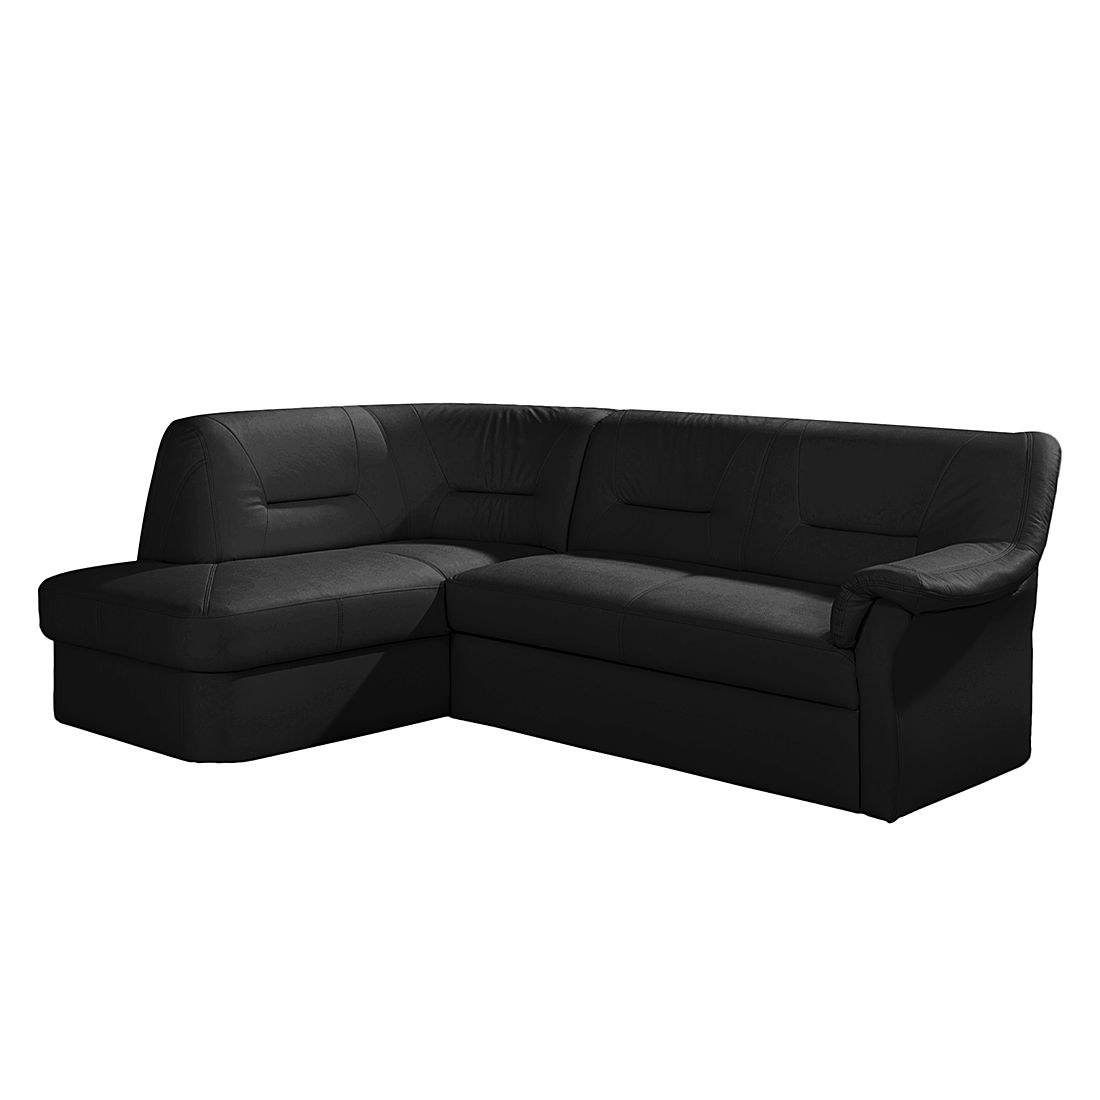 ecksofa badalona mit schlaffunktion kunstleder schwarz. Black Bedroom Furniture Sets. Home Design Ideas